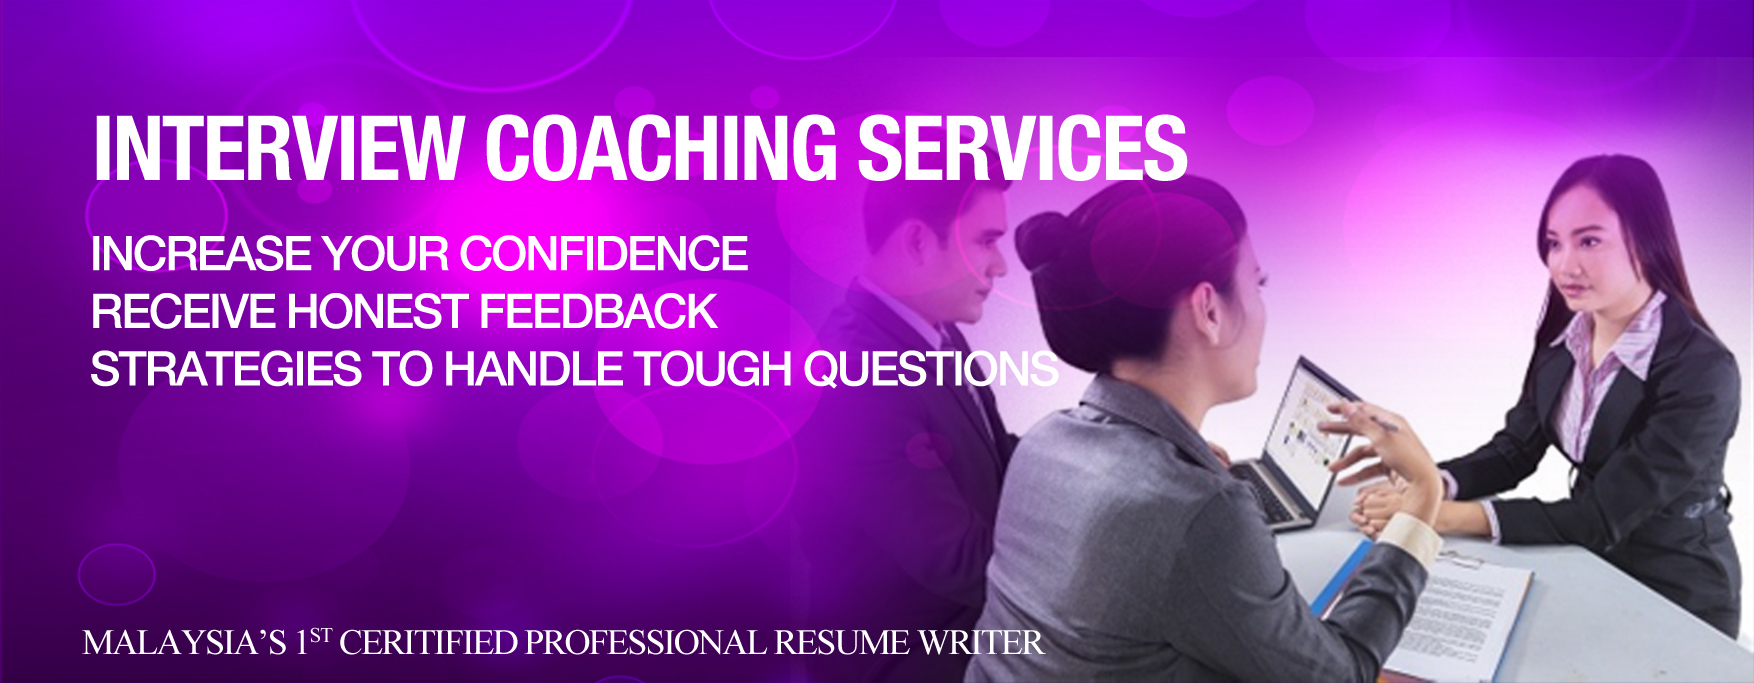 Interview Coaching Page